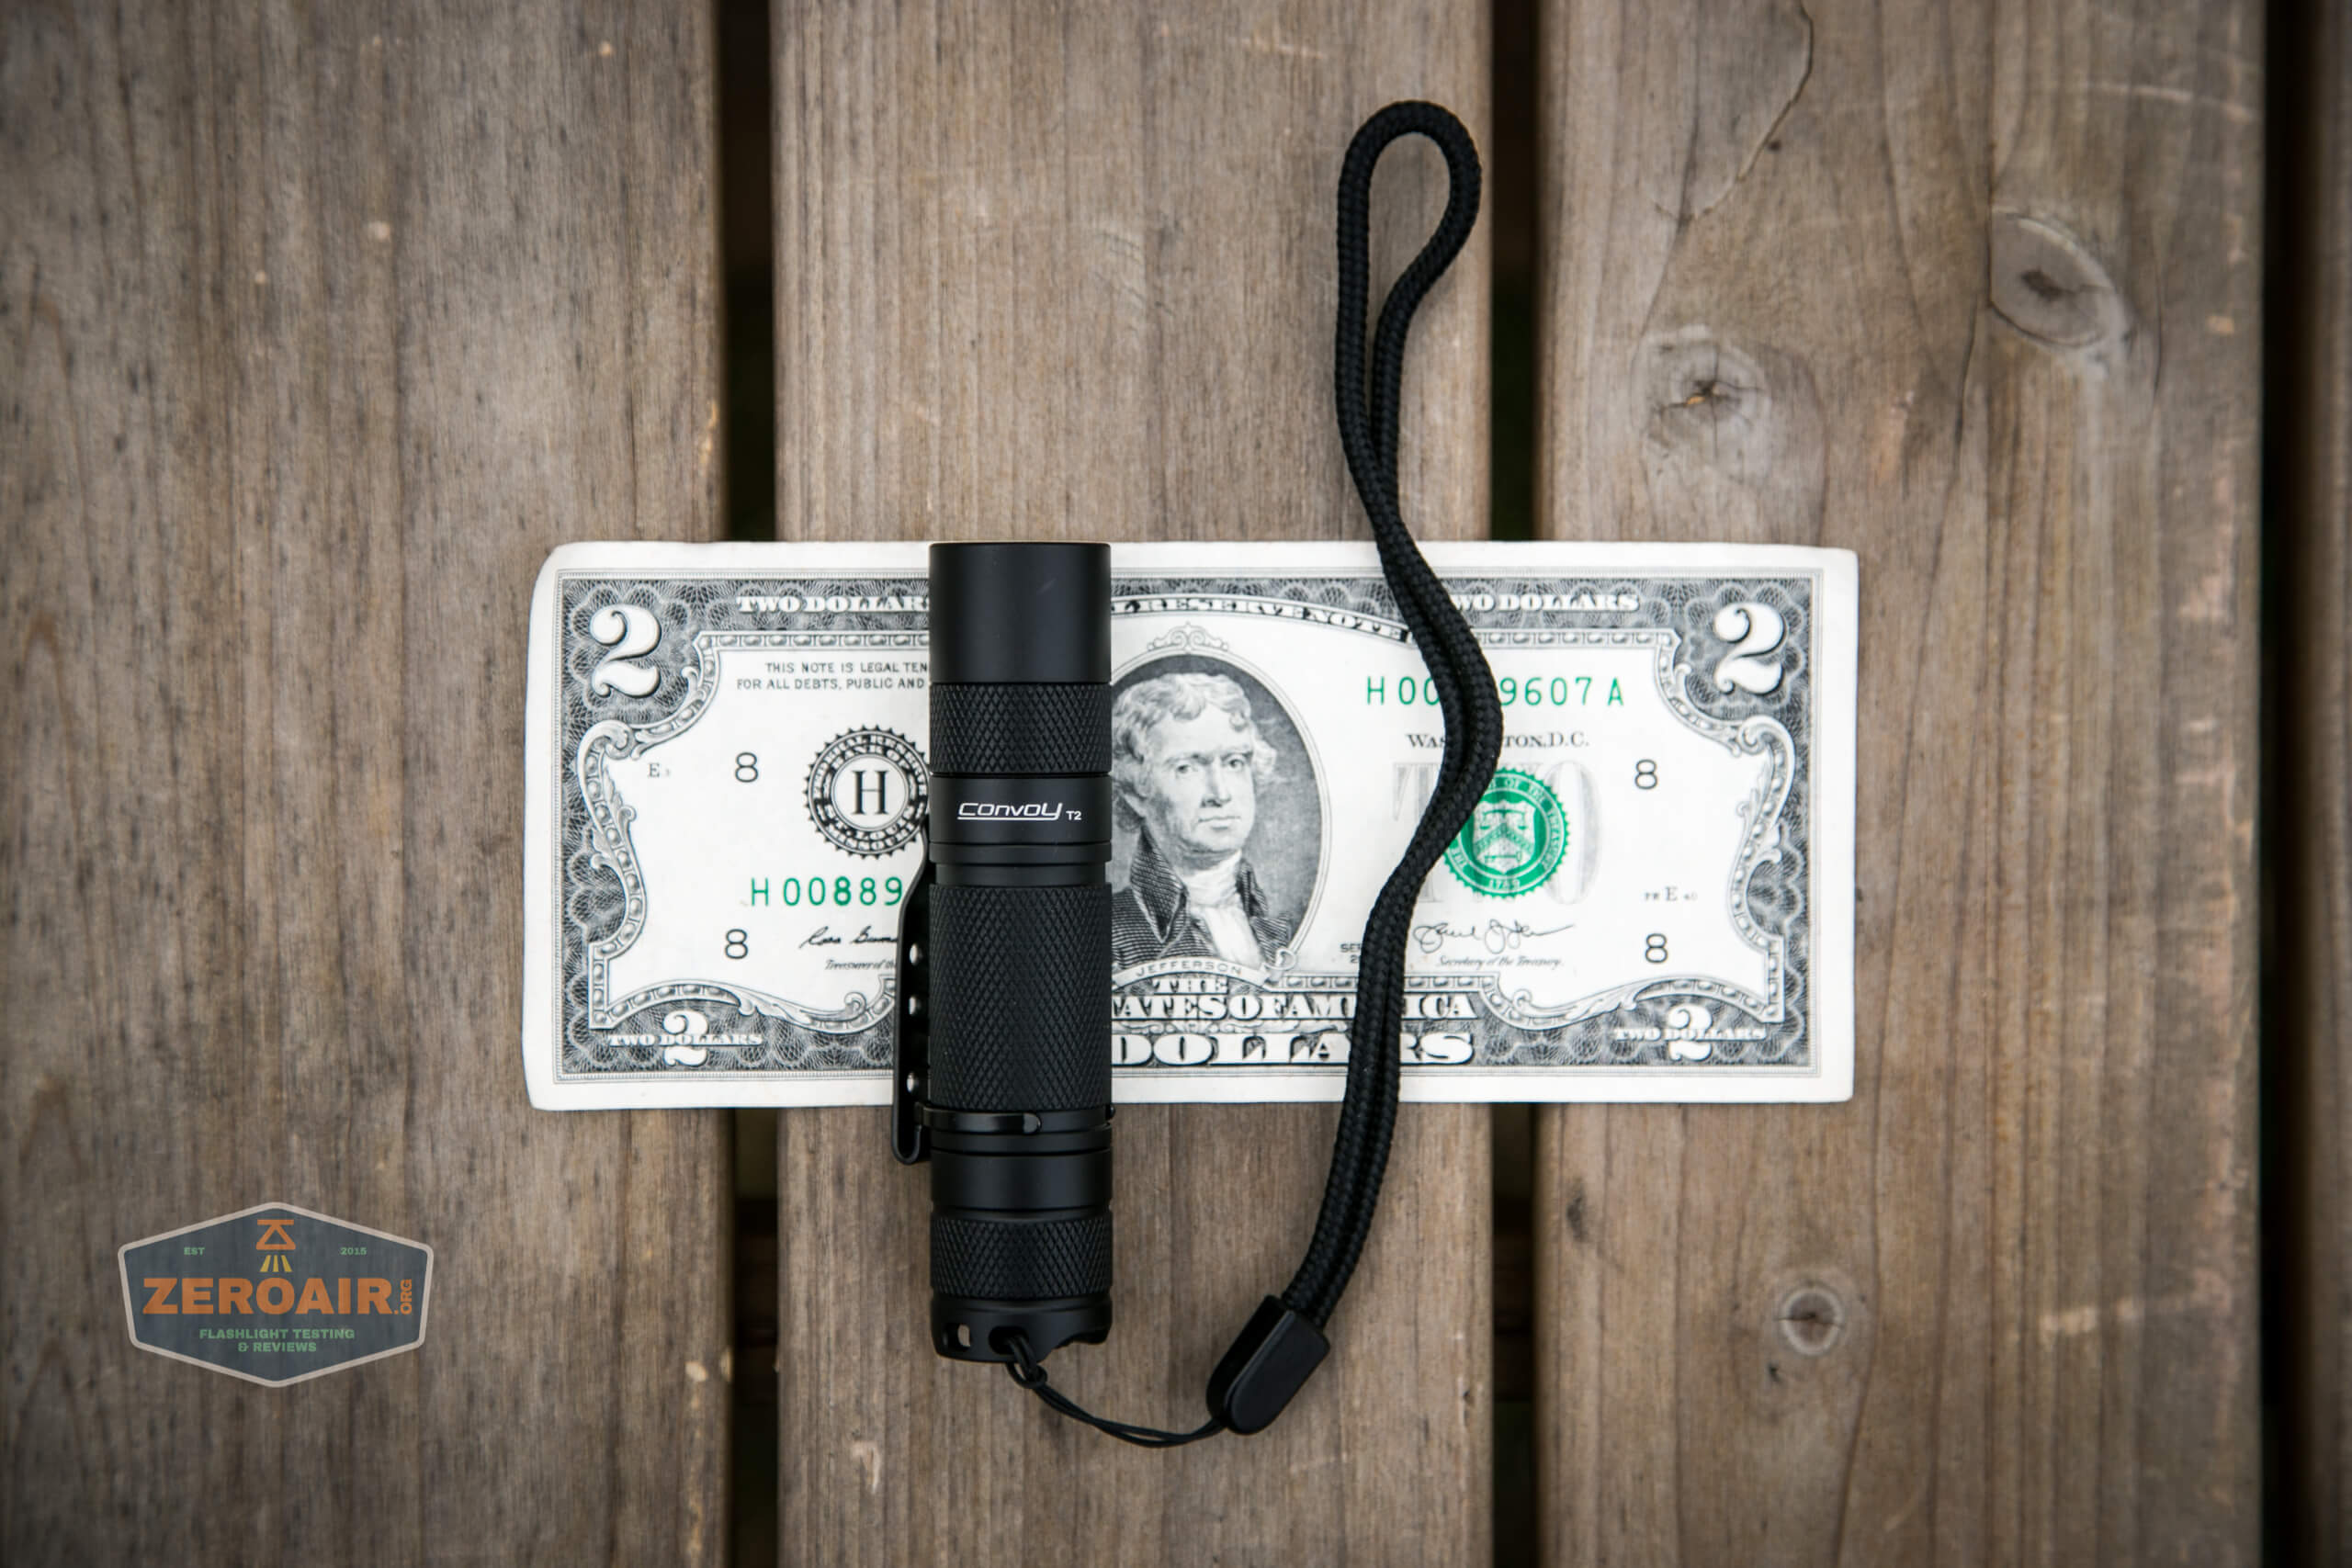 convoy t2 updated 14500/AA flashlight on two dollar bill